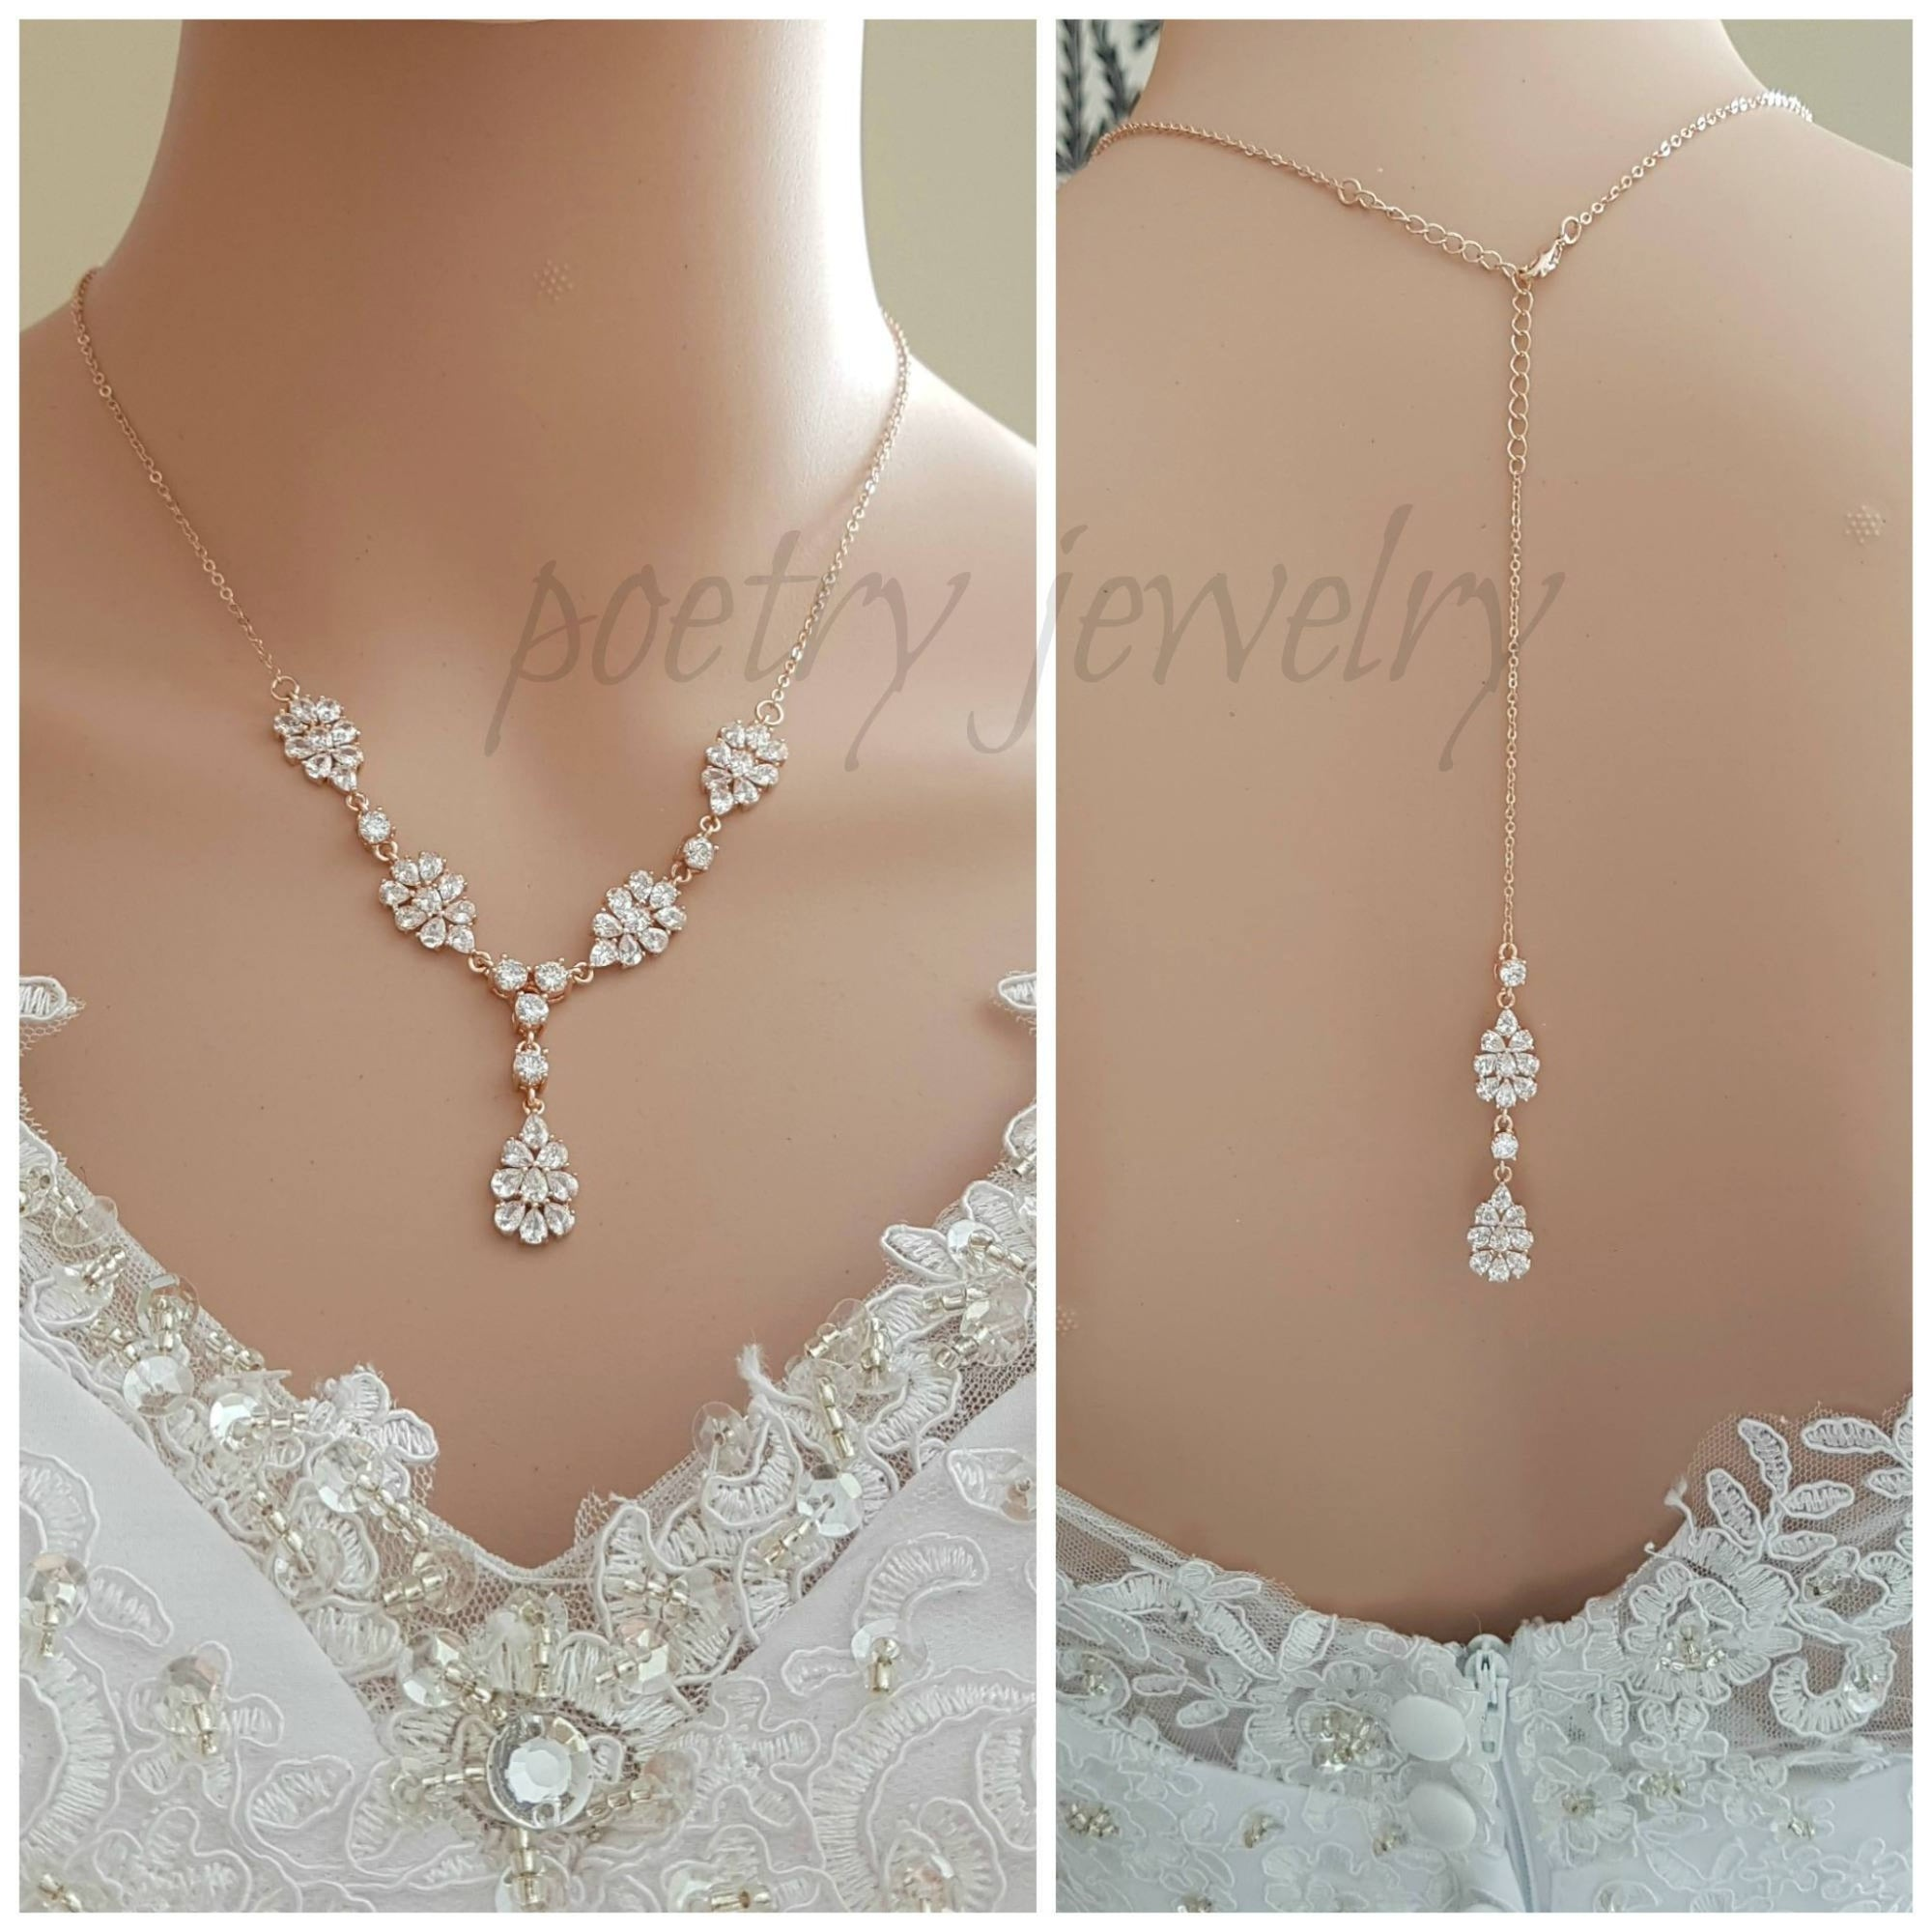 Bridal Jewelry Back Necklace in Rose Gold-Julia